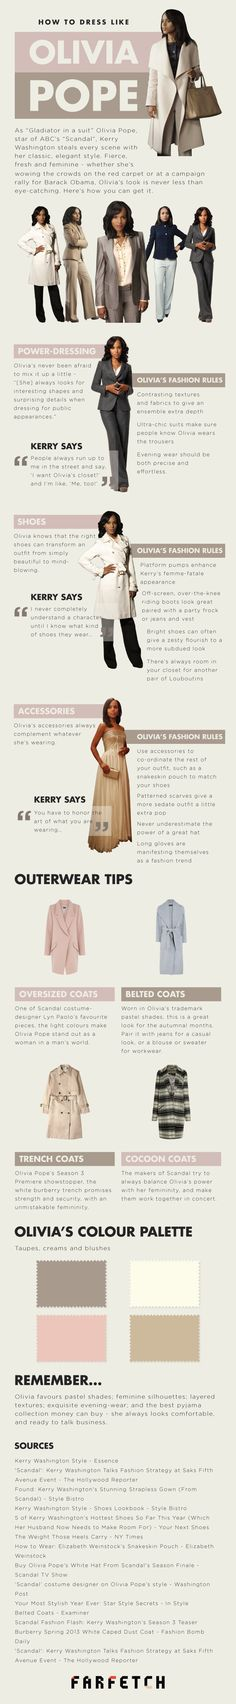 Olivia Pope Style Guide : Do you like Olivia Pope's elegance ? Adorn a glamorous red carpet look ? Who best to lead the way than Olivia Pope. Get the best tips on how to give Olivia's touch to your style.  > http://infographicsmania.com/olivia-pope-style-guide/?utm_source=Pinterest&utm_medium=ZAKKAS&utm_campaign=SNAP